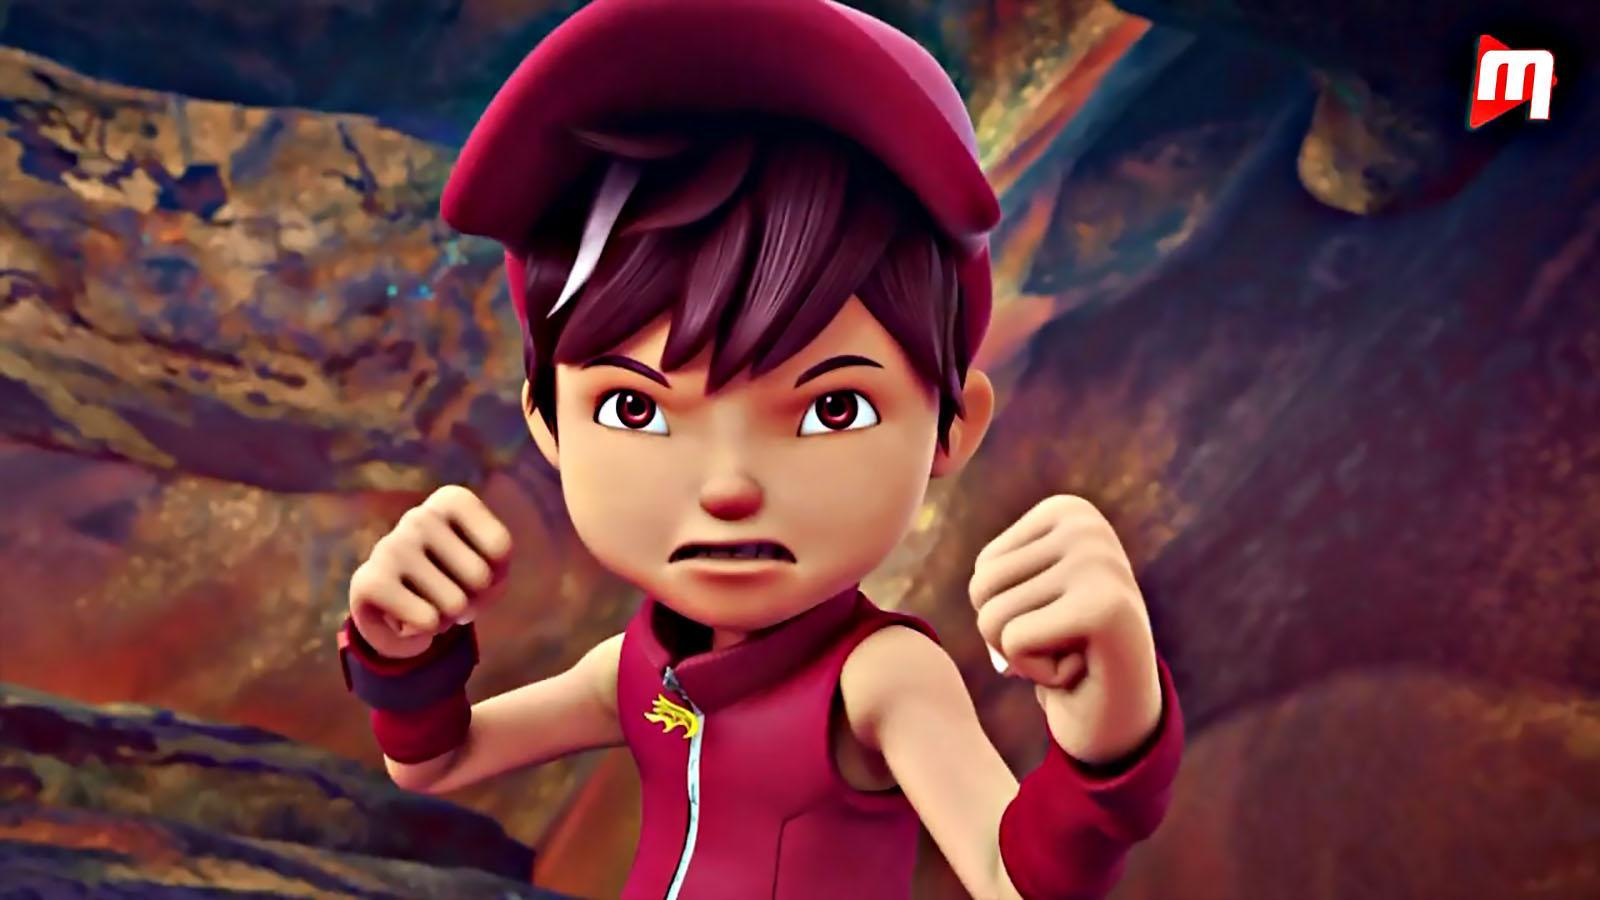 Call From Boboiboy For Android APK Download